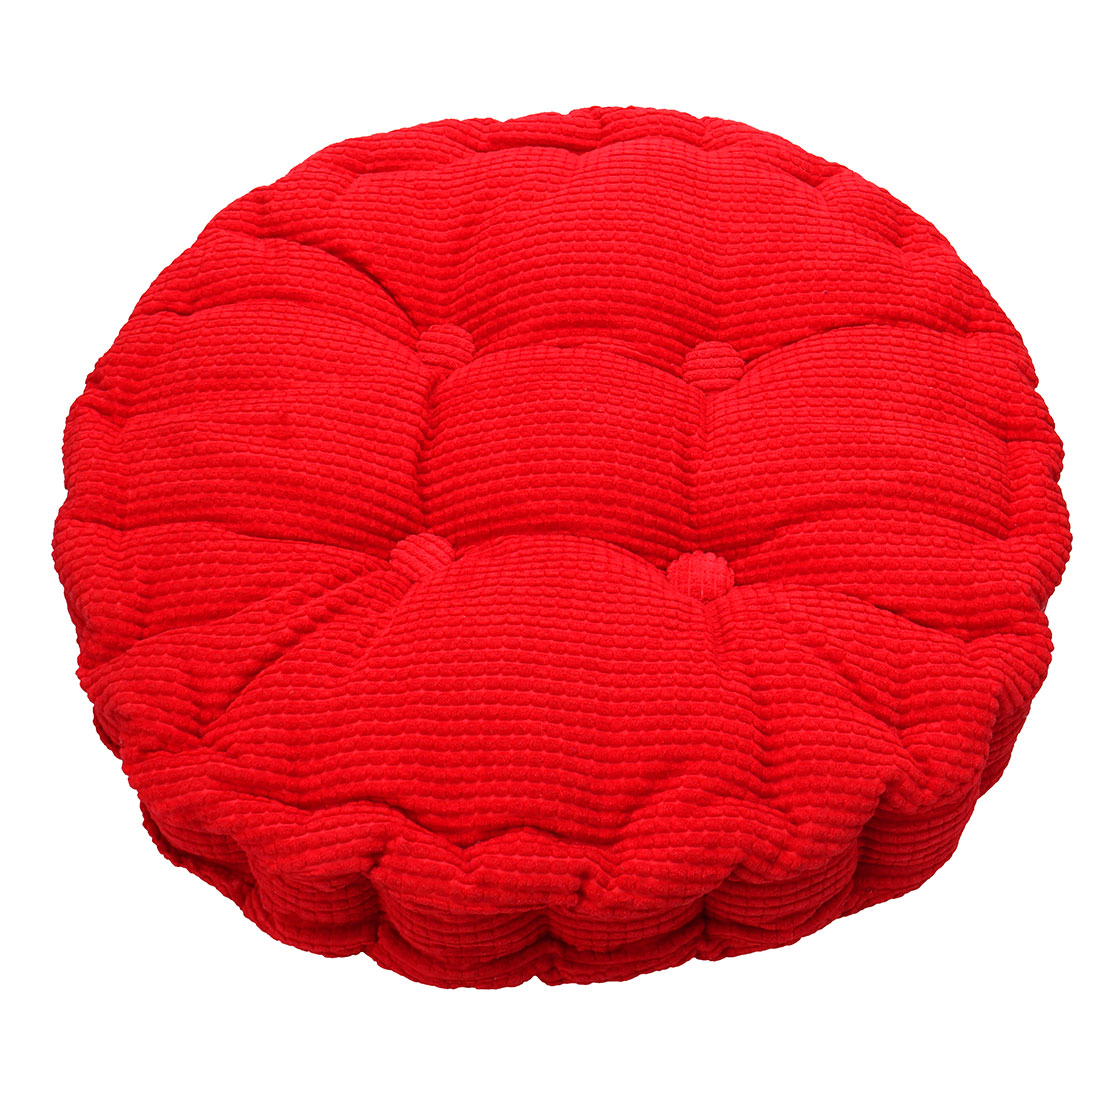 Home Office Corduroy Round Shaped Sofa Floor Chair Seat Cushion Pad Red 40cm Dia